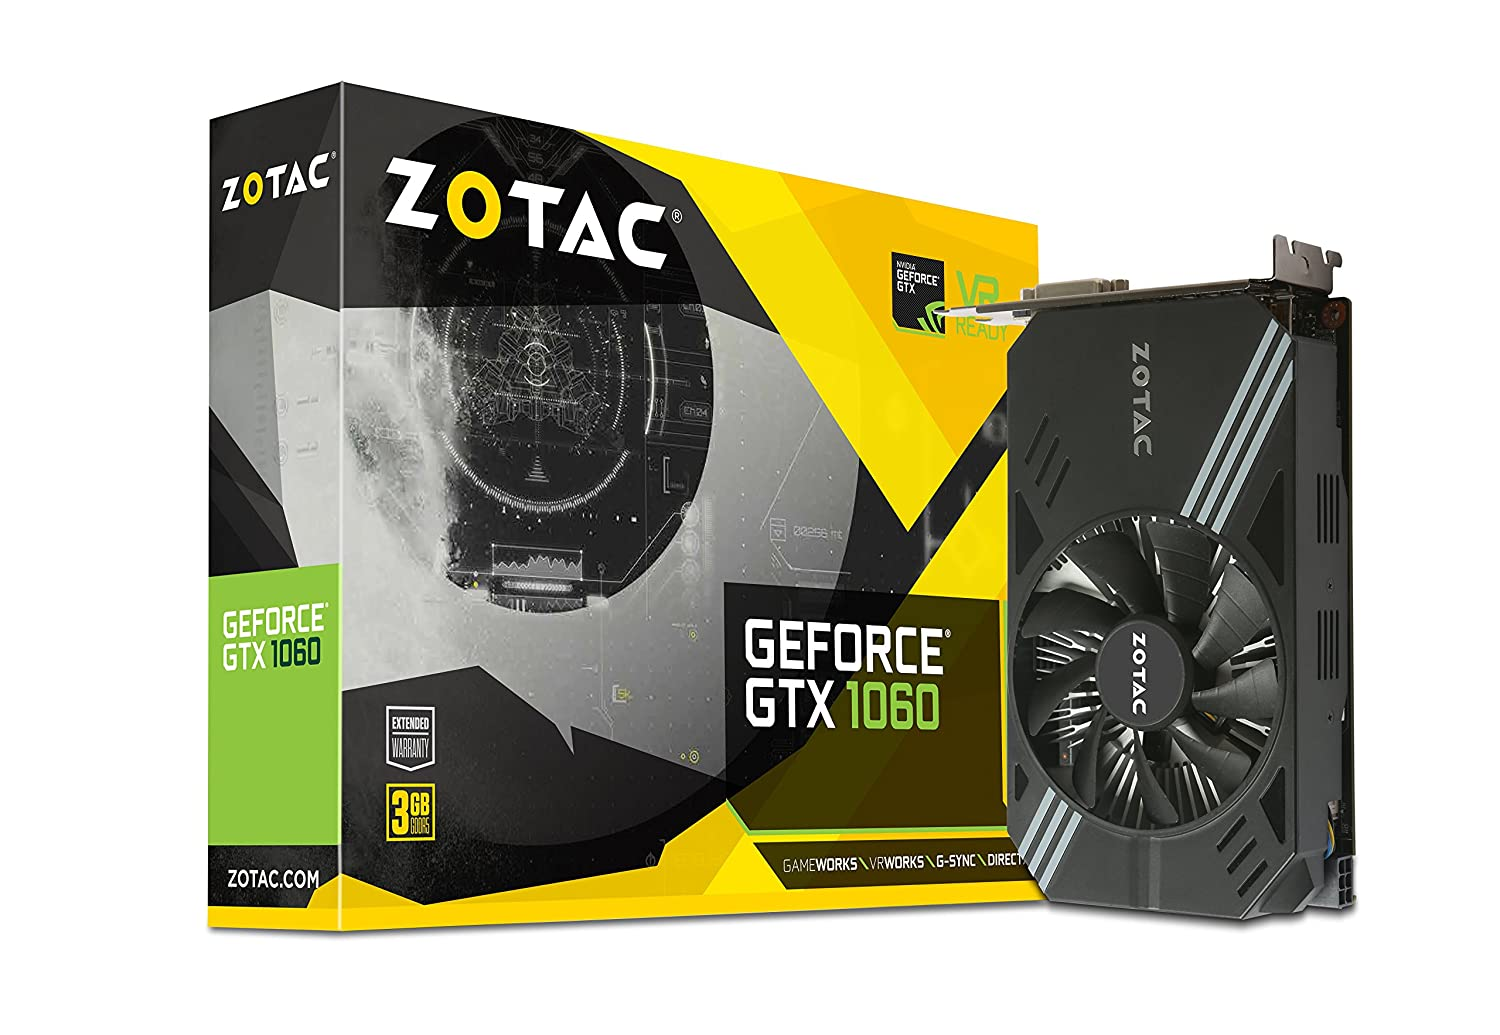 Best Gaming Graphics Card 2020.Top 20 Best Gaming Graphics Cards Reviews 2019 2020 On